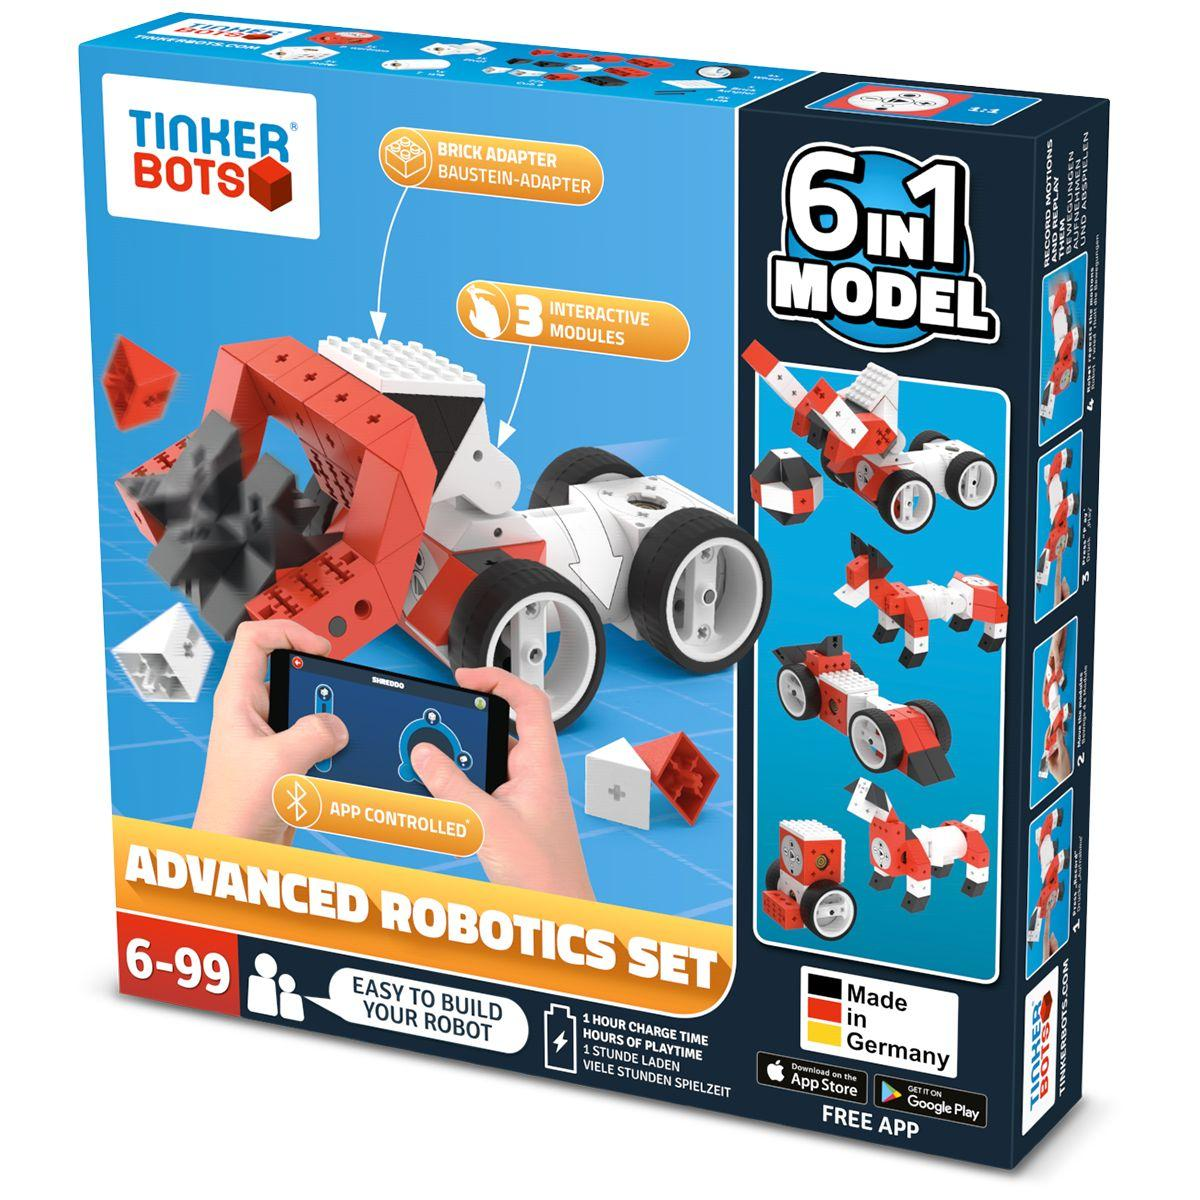 Robot programmable tinkerbots robotics advanced set - livraison offerte : code relay